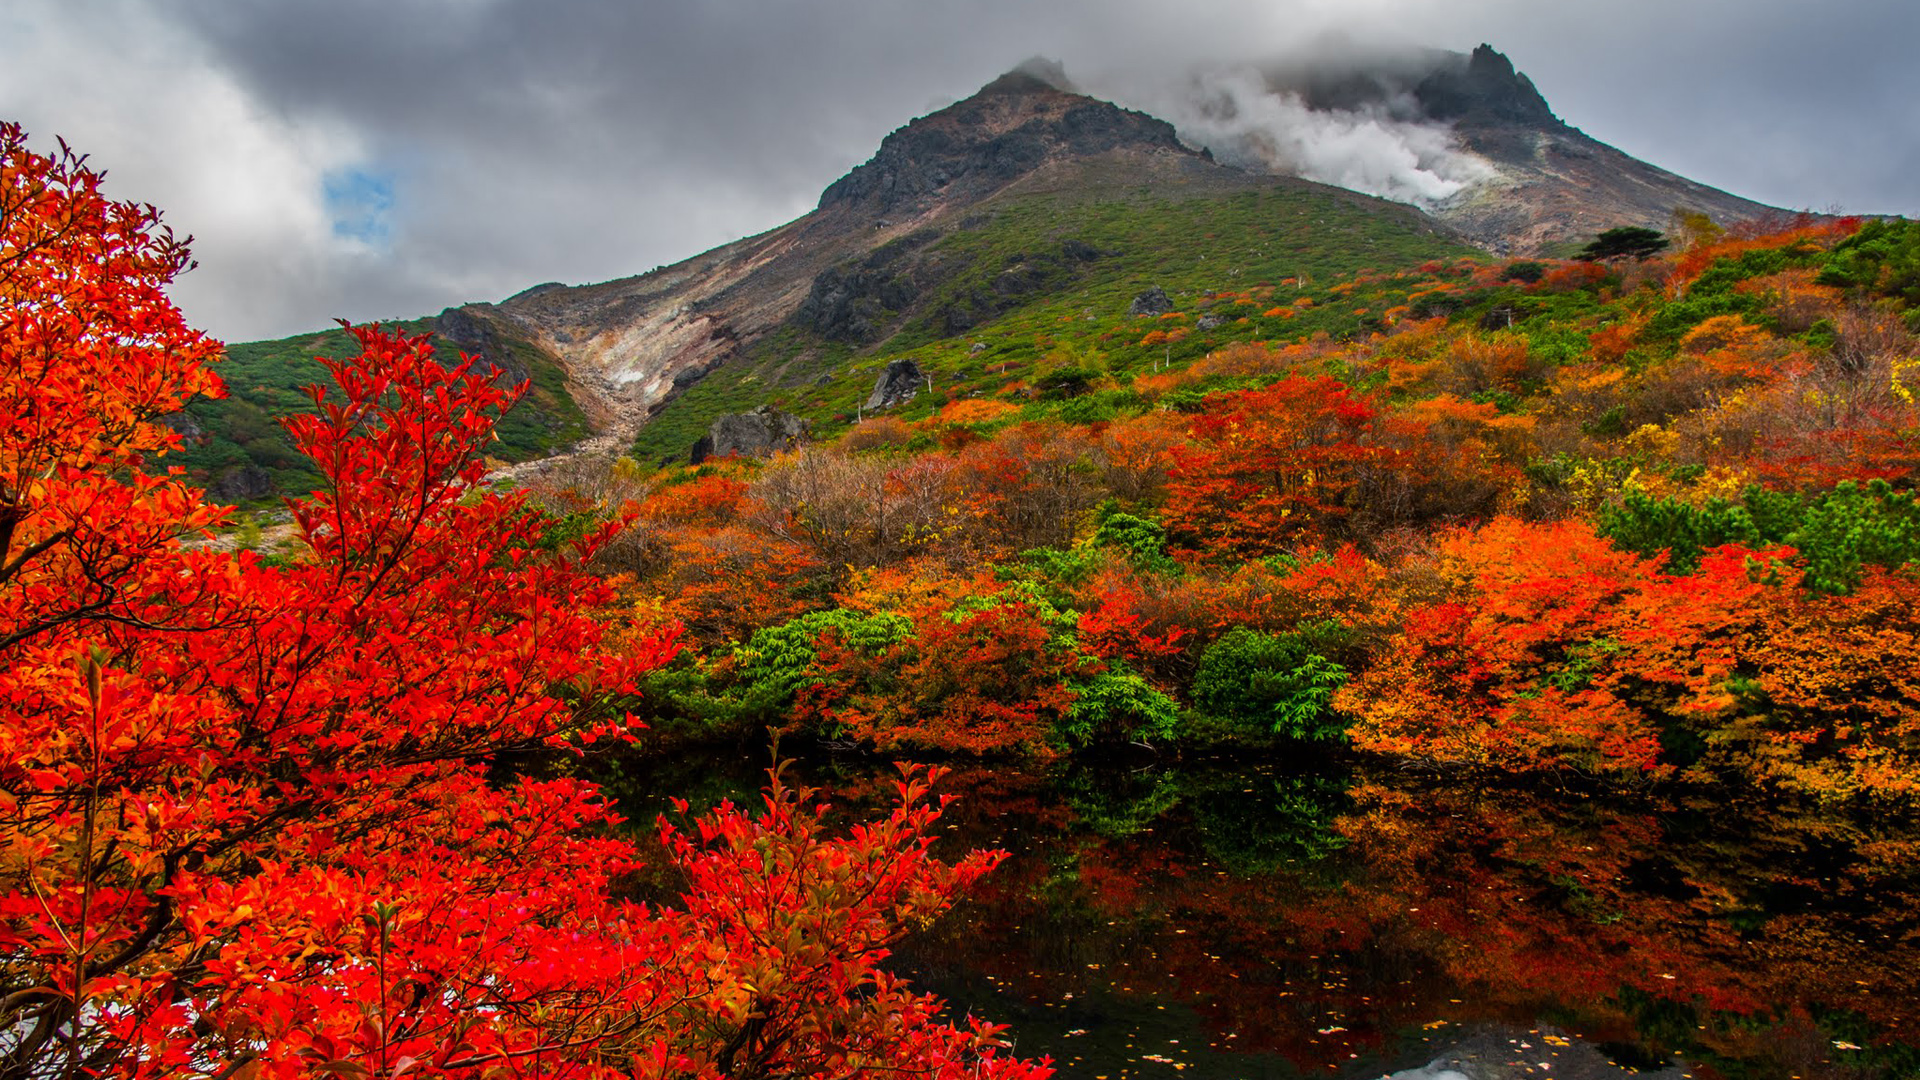 Fall Forest Hd Wallpaper Nature Images Hd Autumn In Nasudake Japan Hd